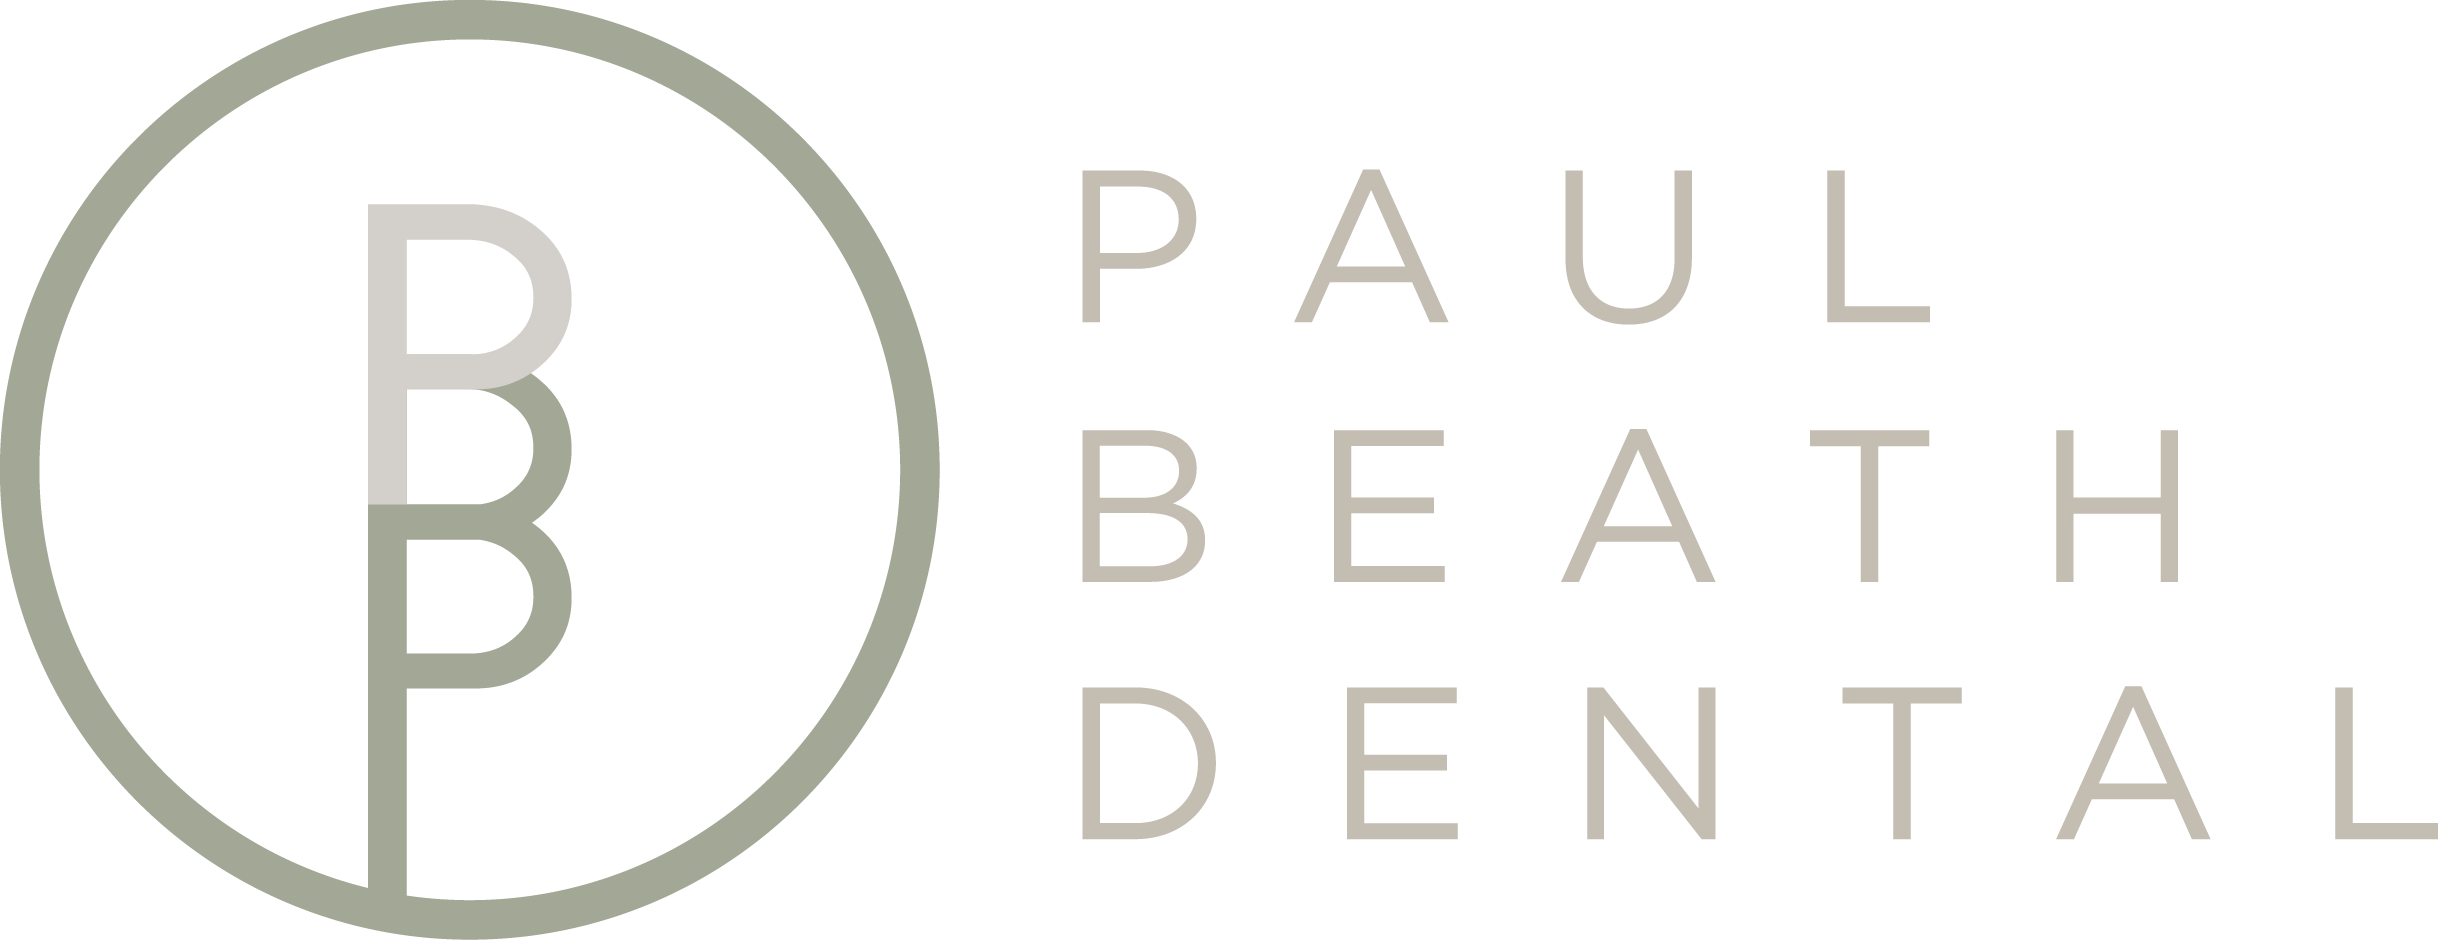 Paul Beath Dental